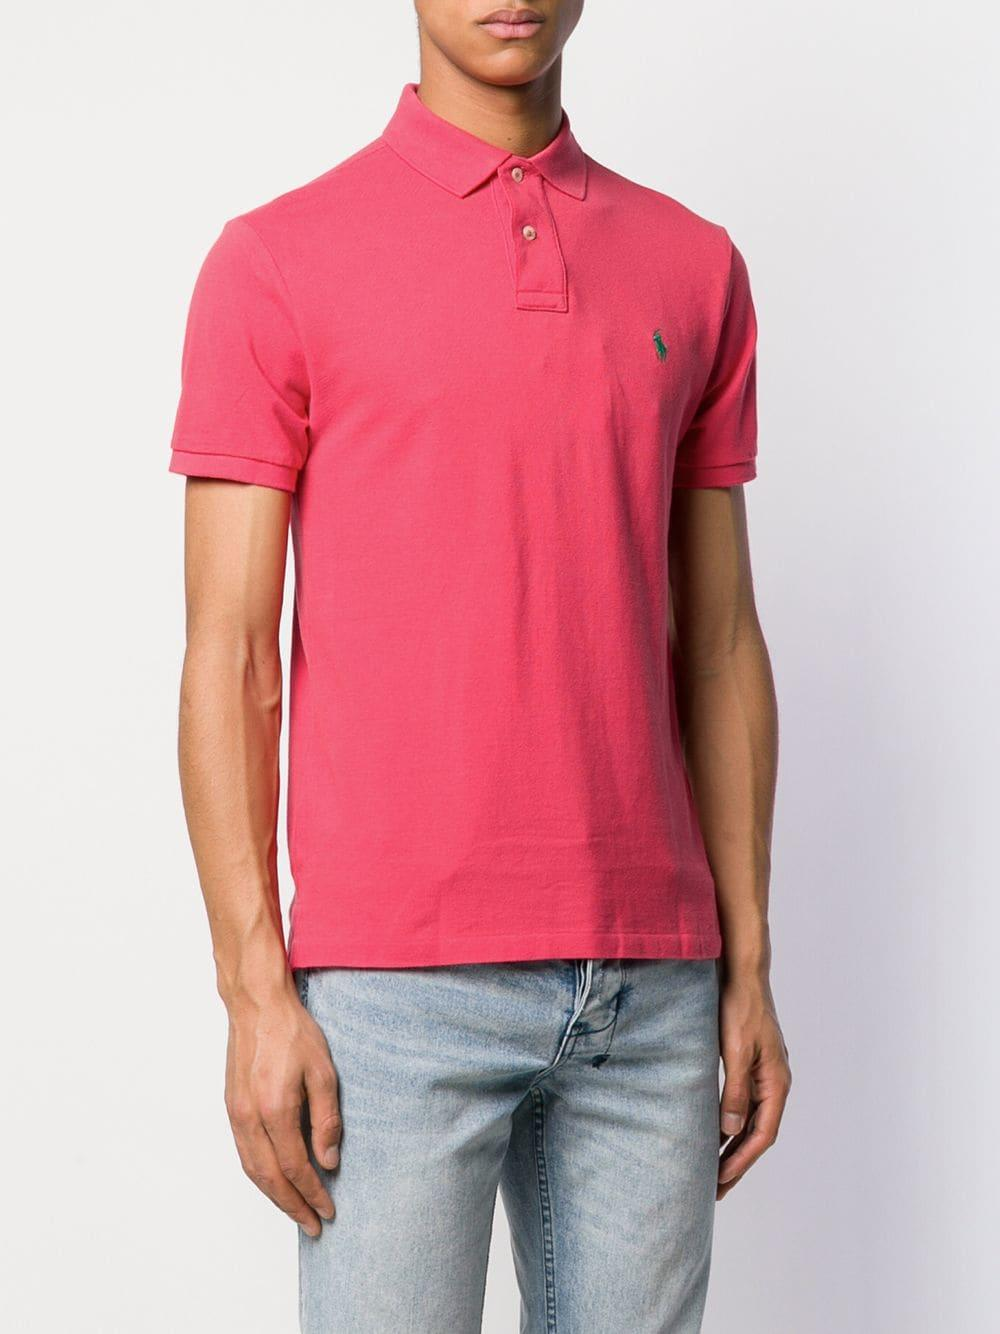 64f414c6a Polo Ralph Lauren - Pink Logo Embroidered Polo Shirt for Men - Lyst. View  fullscreen